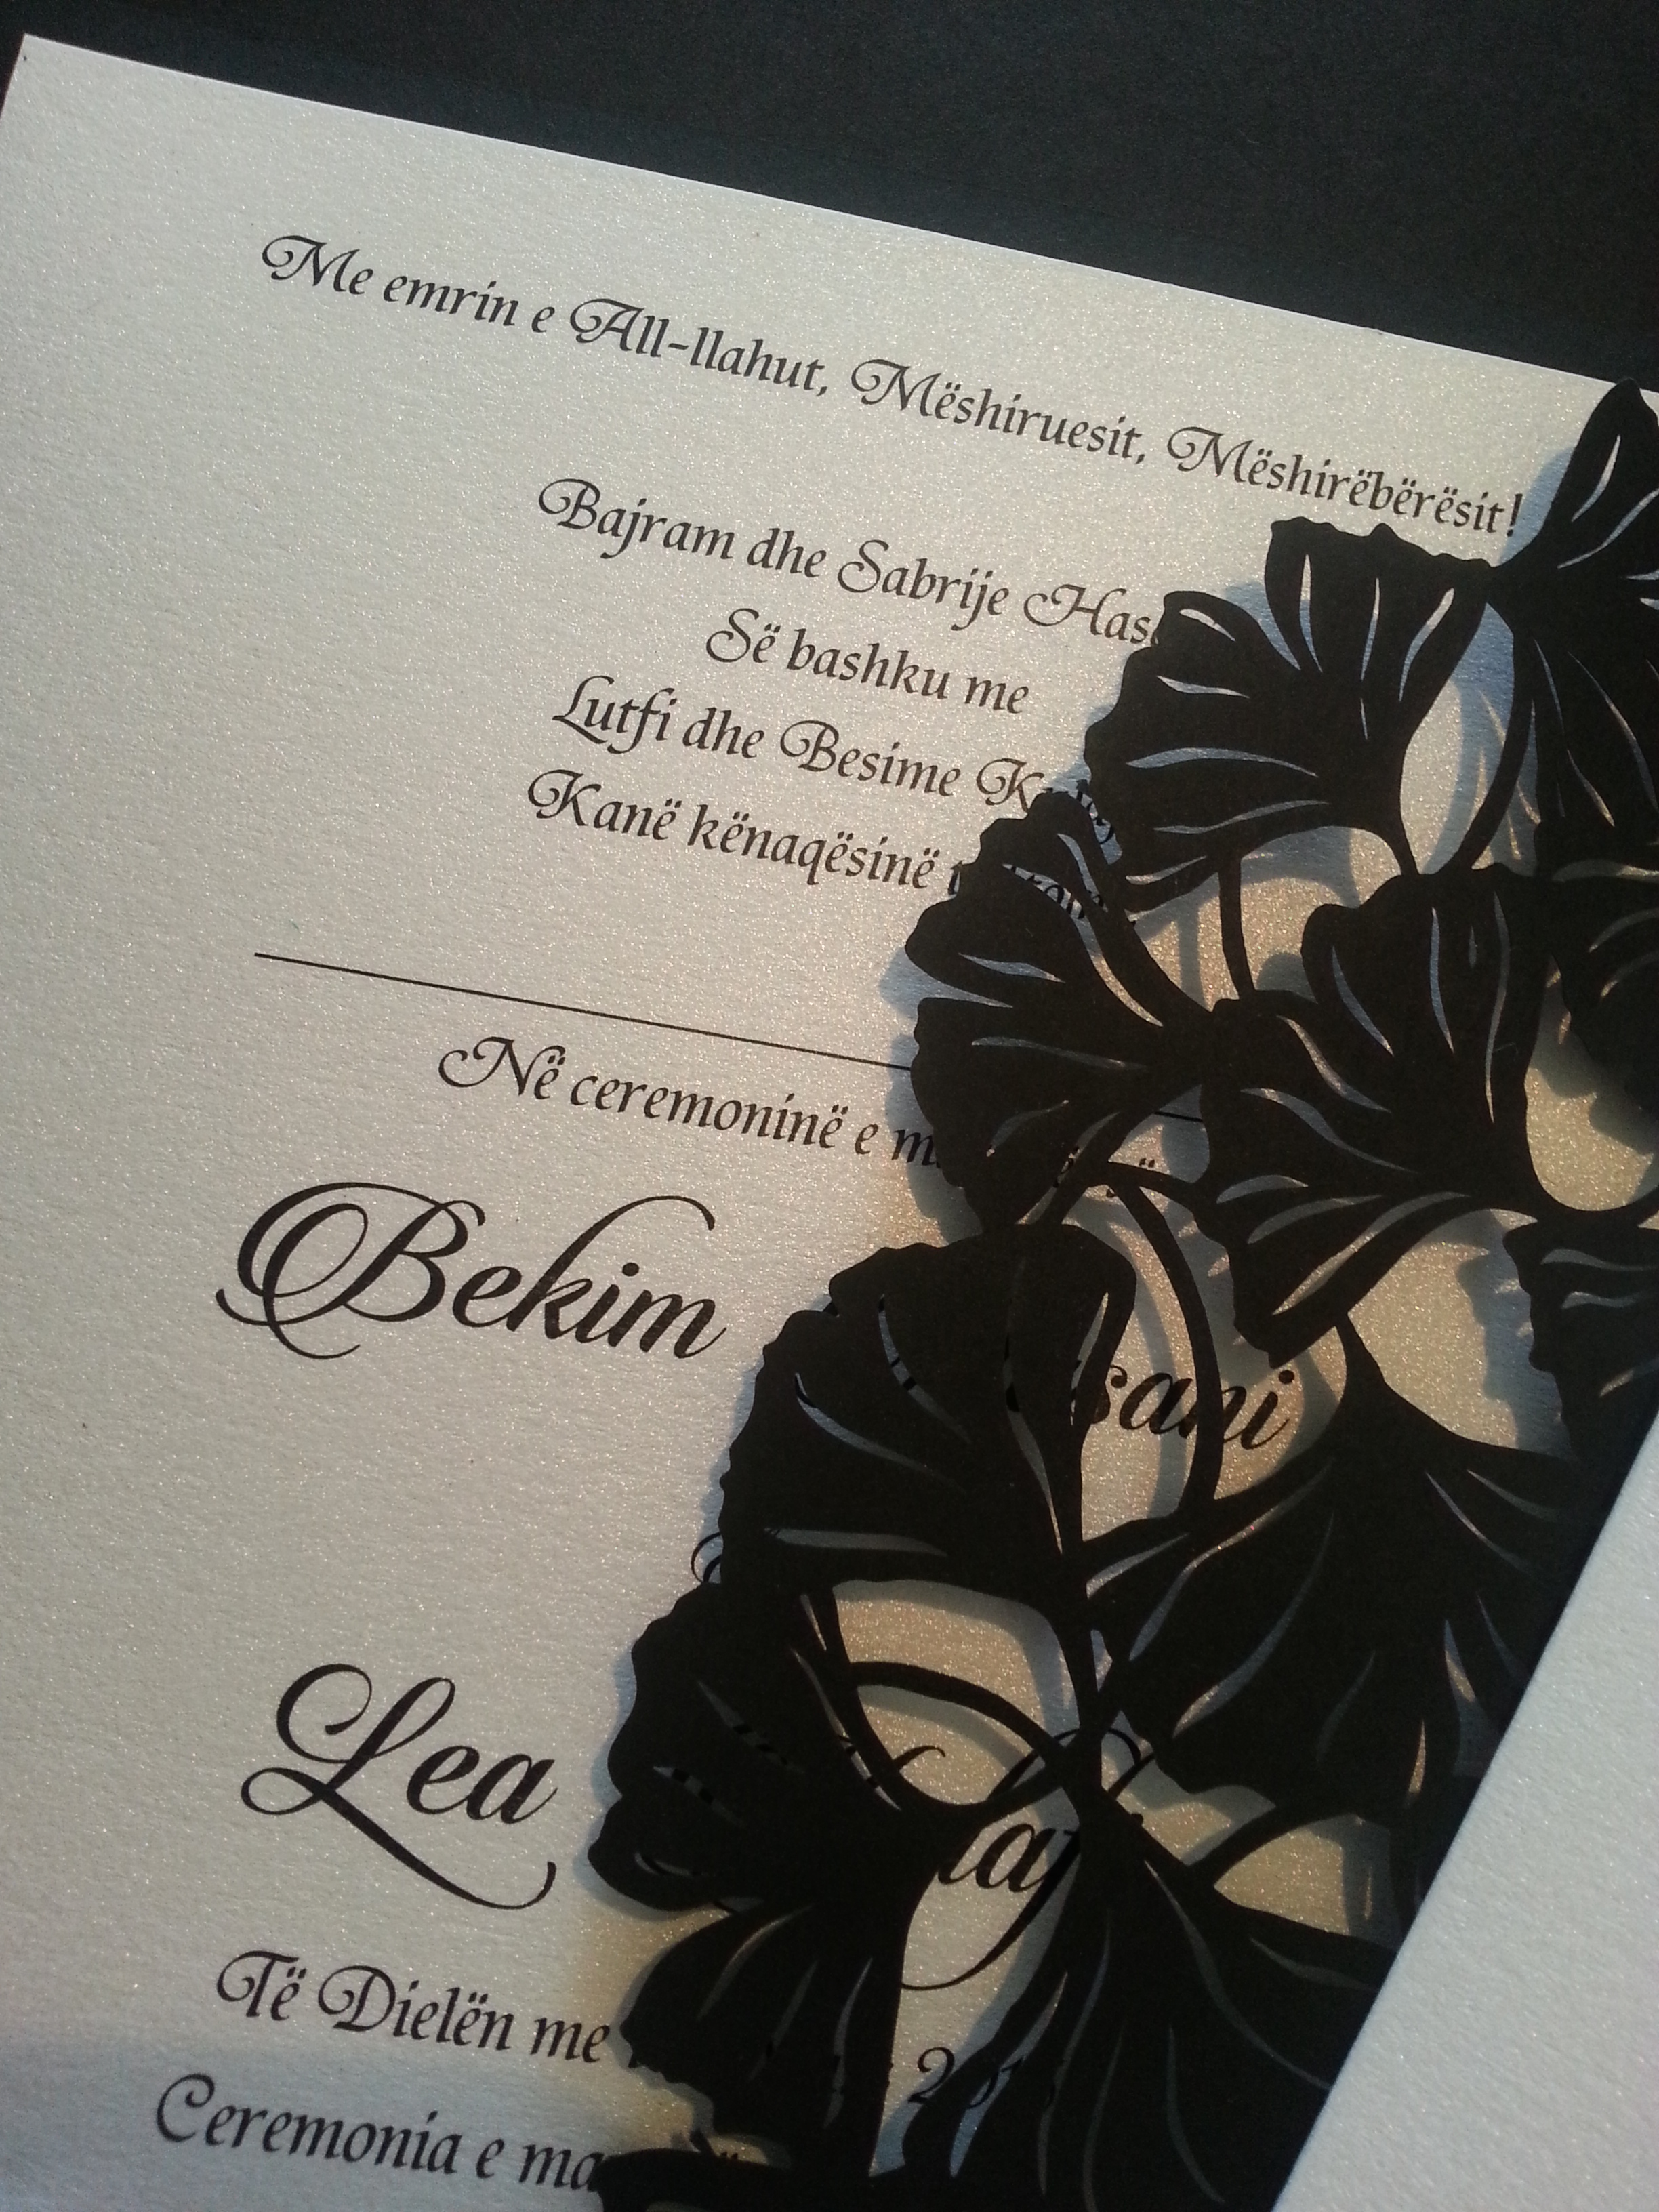 Lasercut invitations in black make a statement